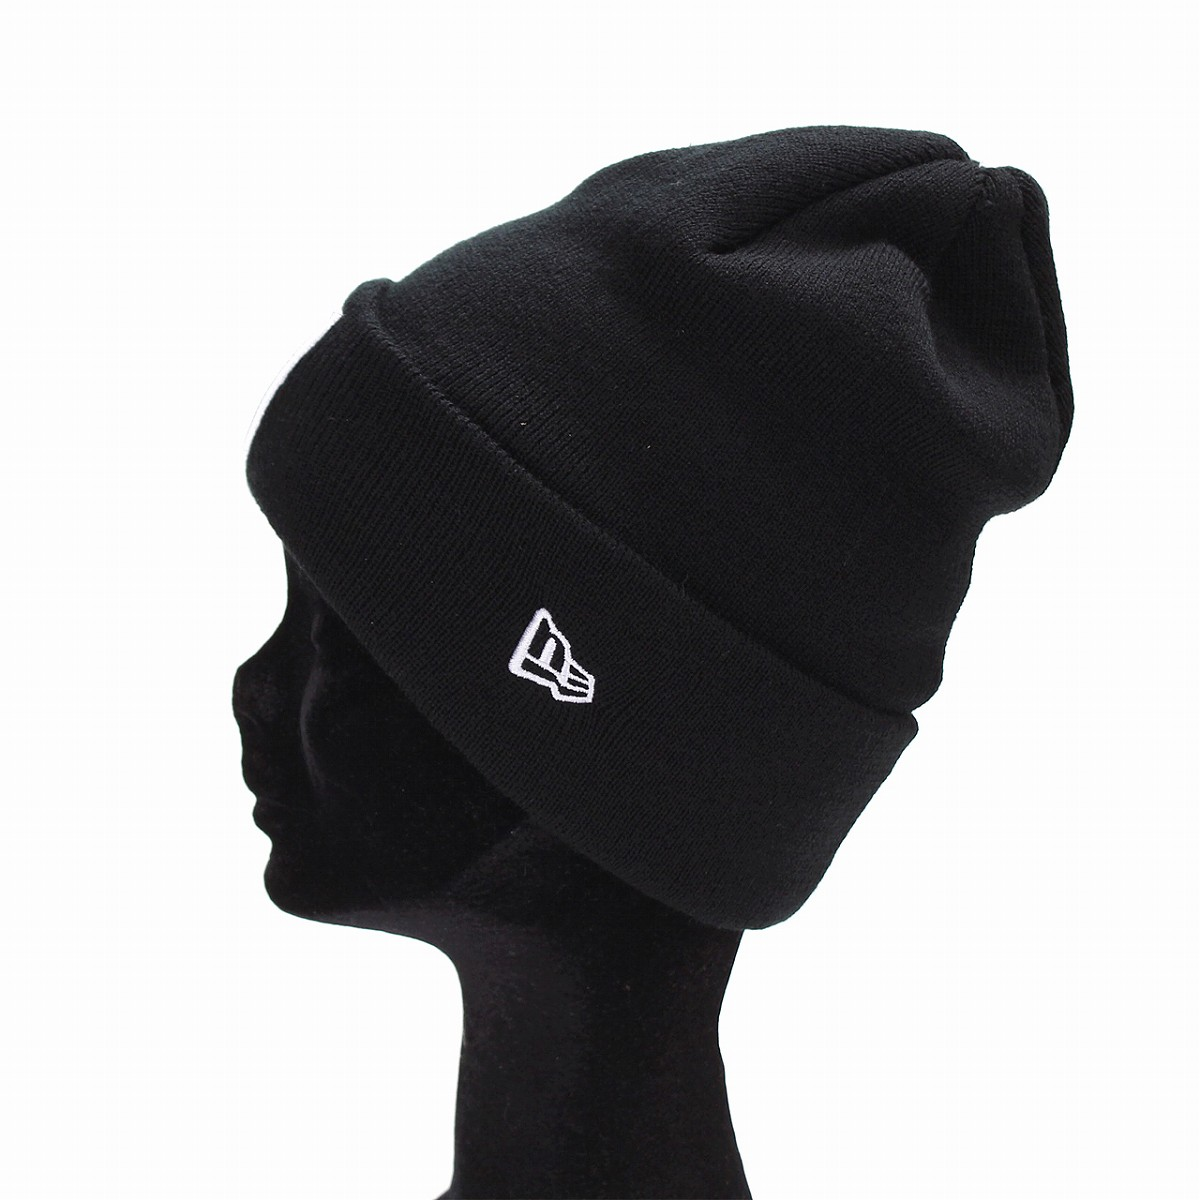 430d9b01 newera Oakland Raiders knit hat ニューエラニットワッチチームロゴ NBA NEWERA Basic Cuff Knit  black [beanie cap] present man new gills ...